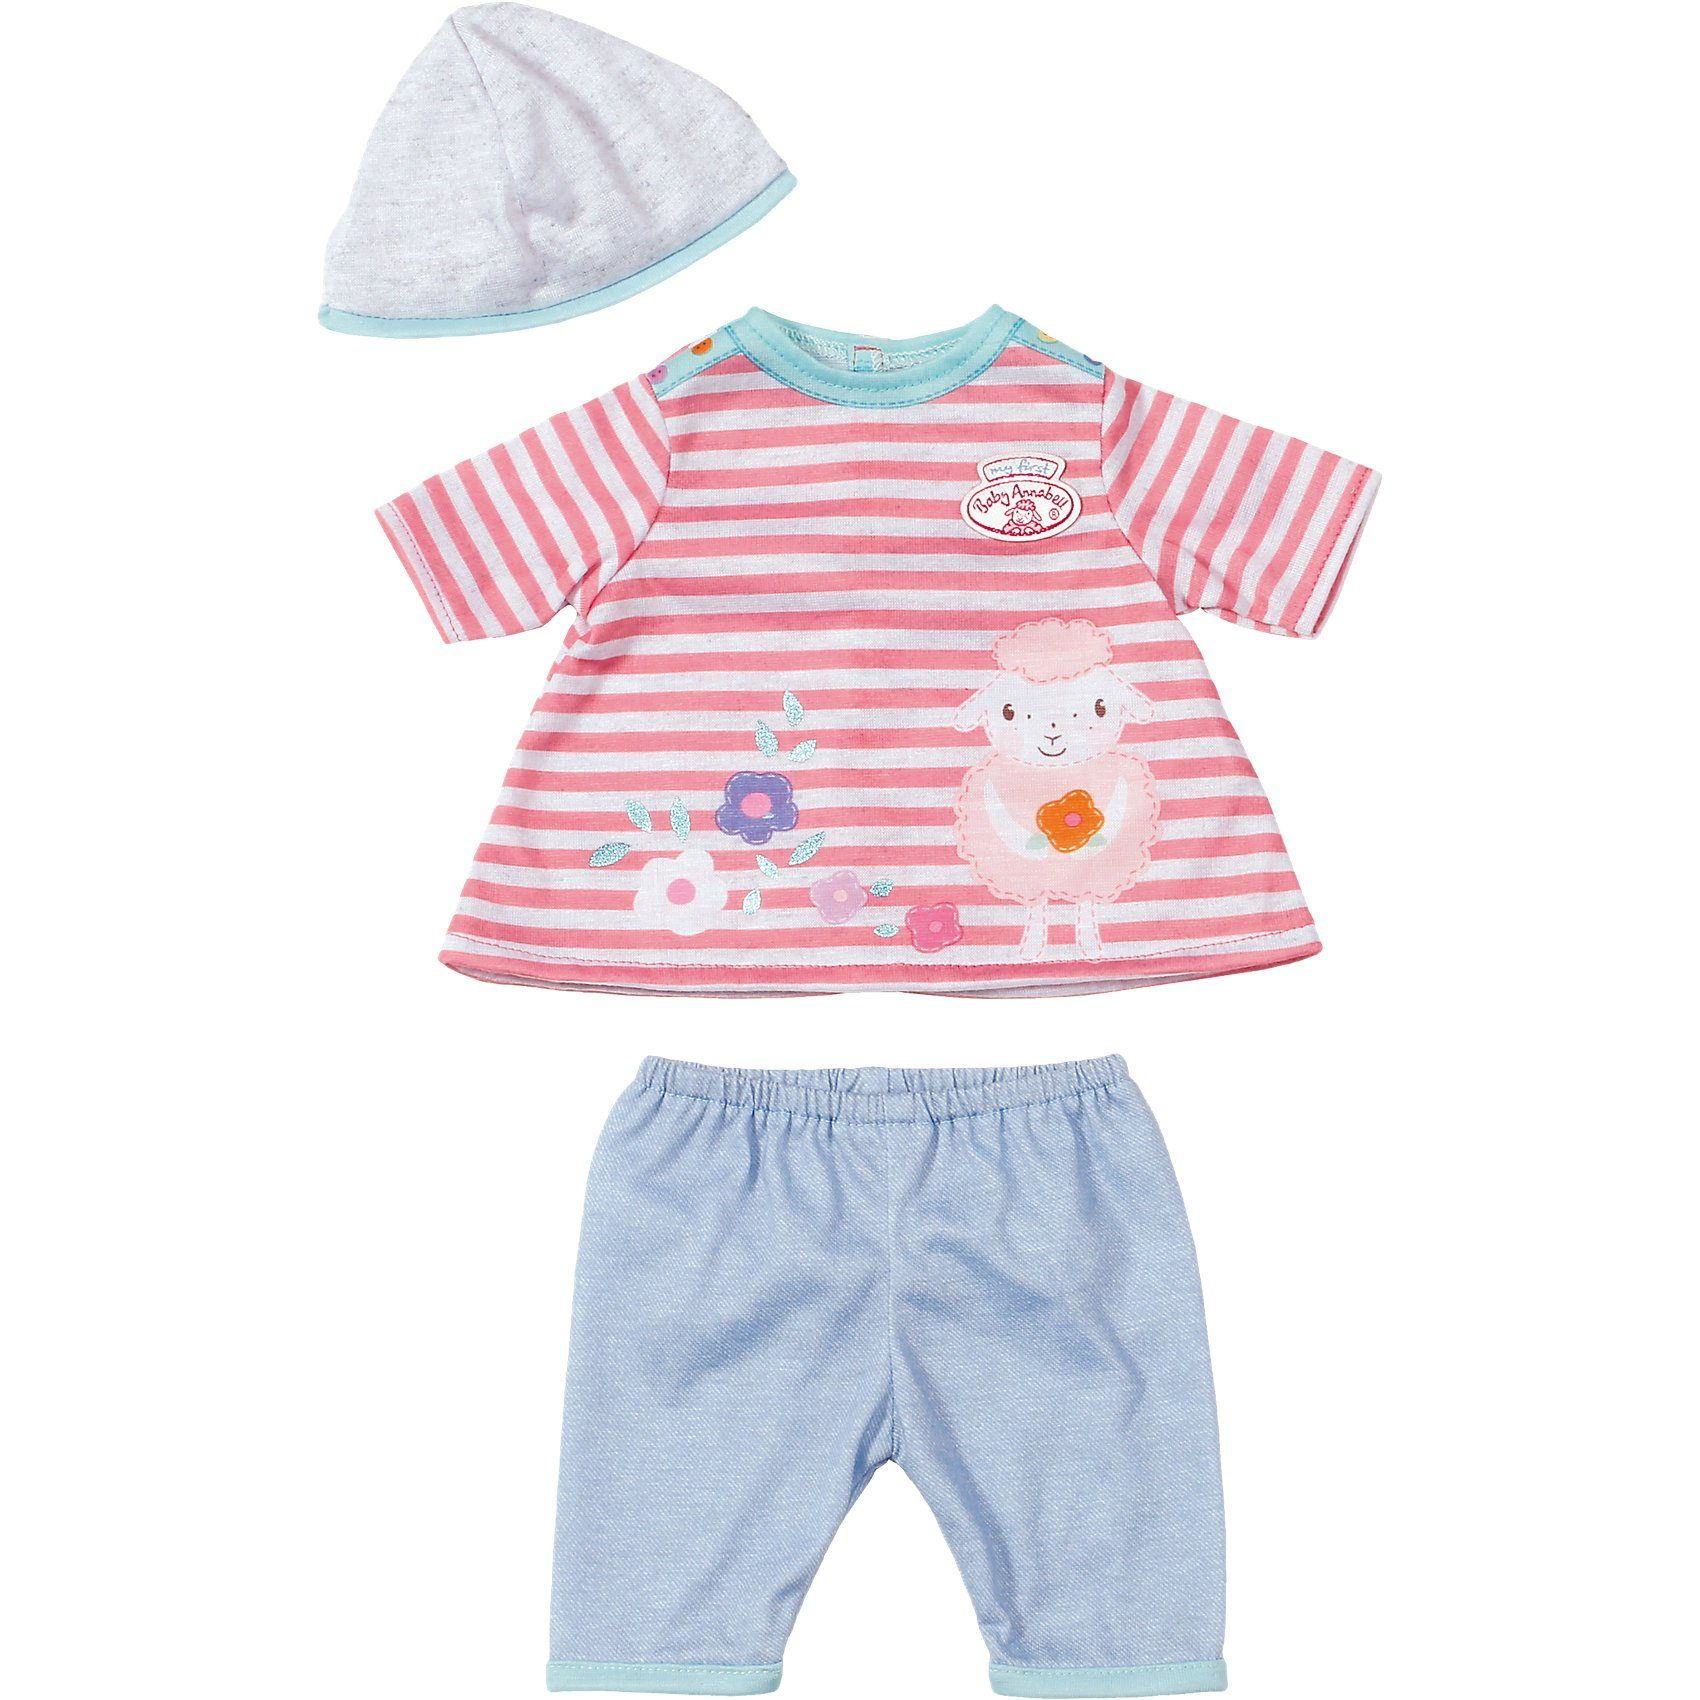 Zapf Creation my first Baby Annabell® Puppenkleidung Spiel-Outfit gestreif